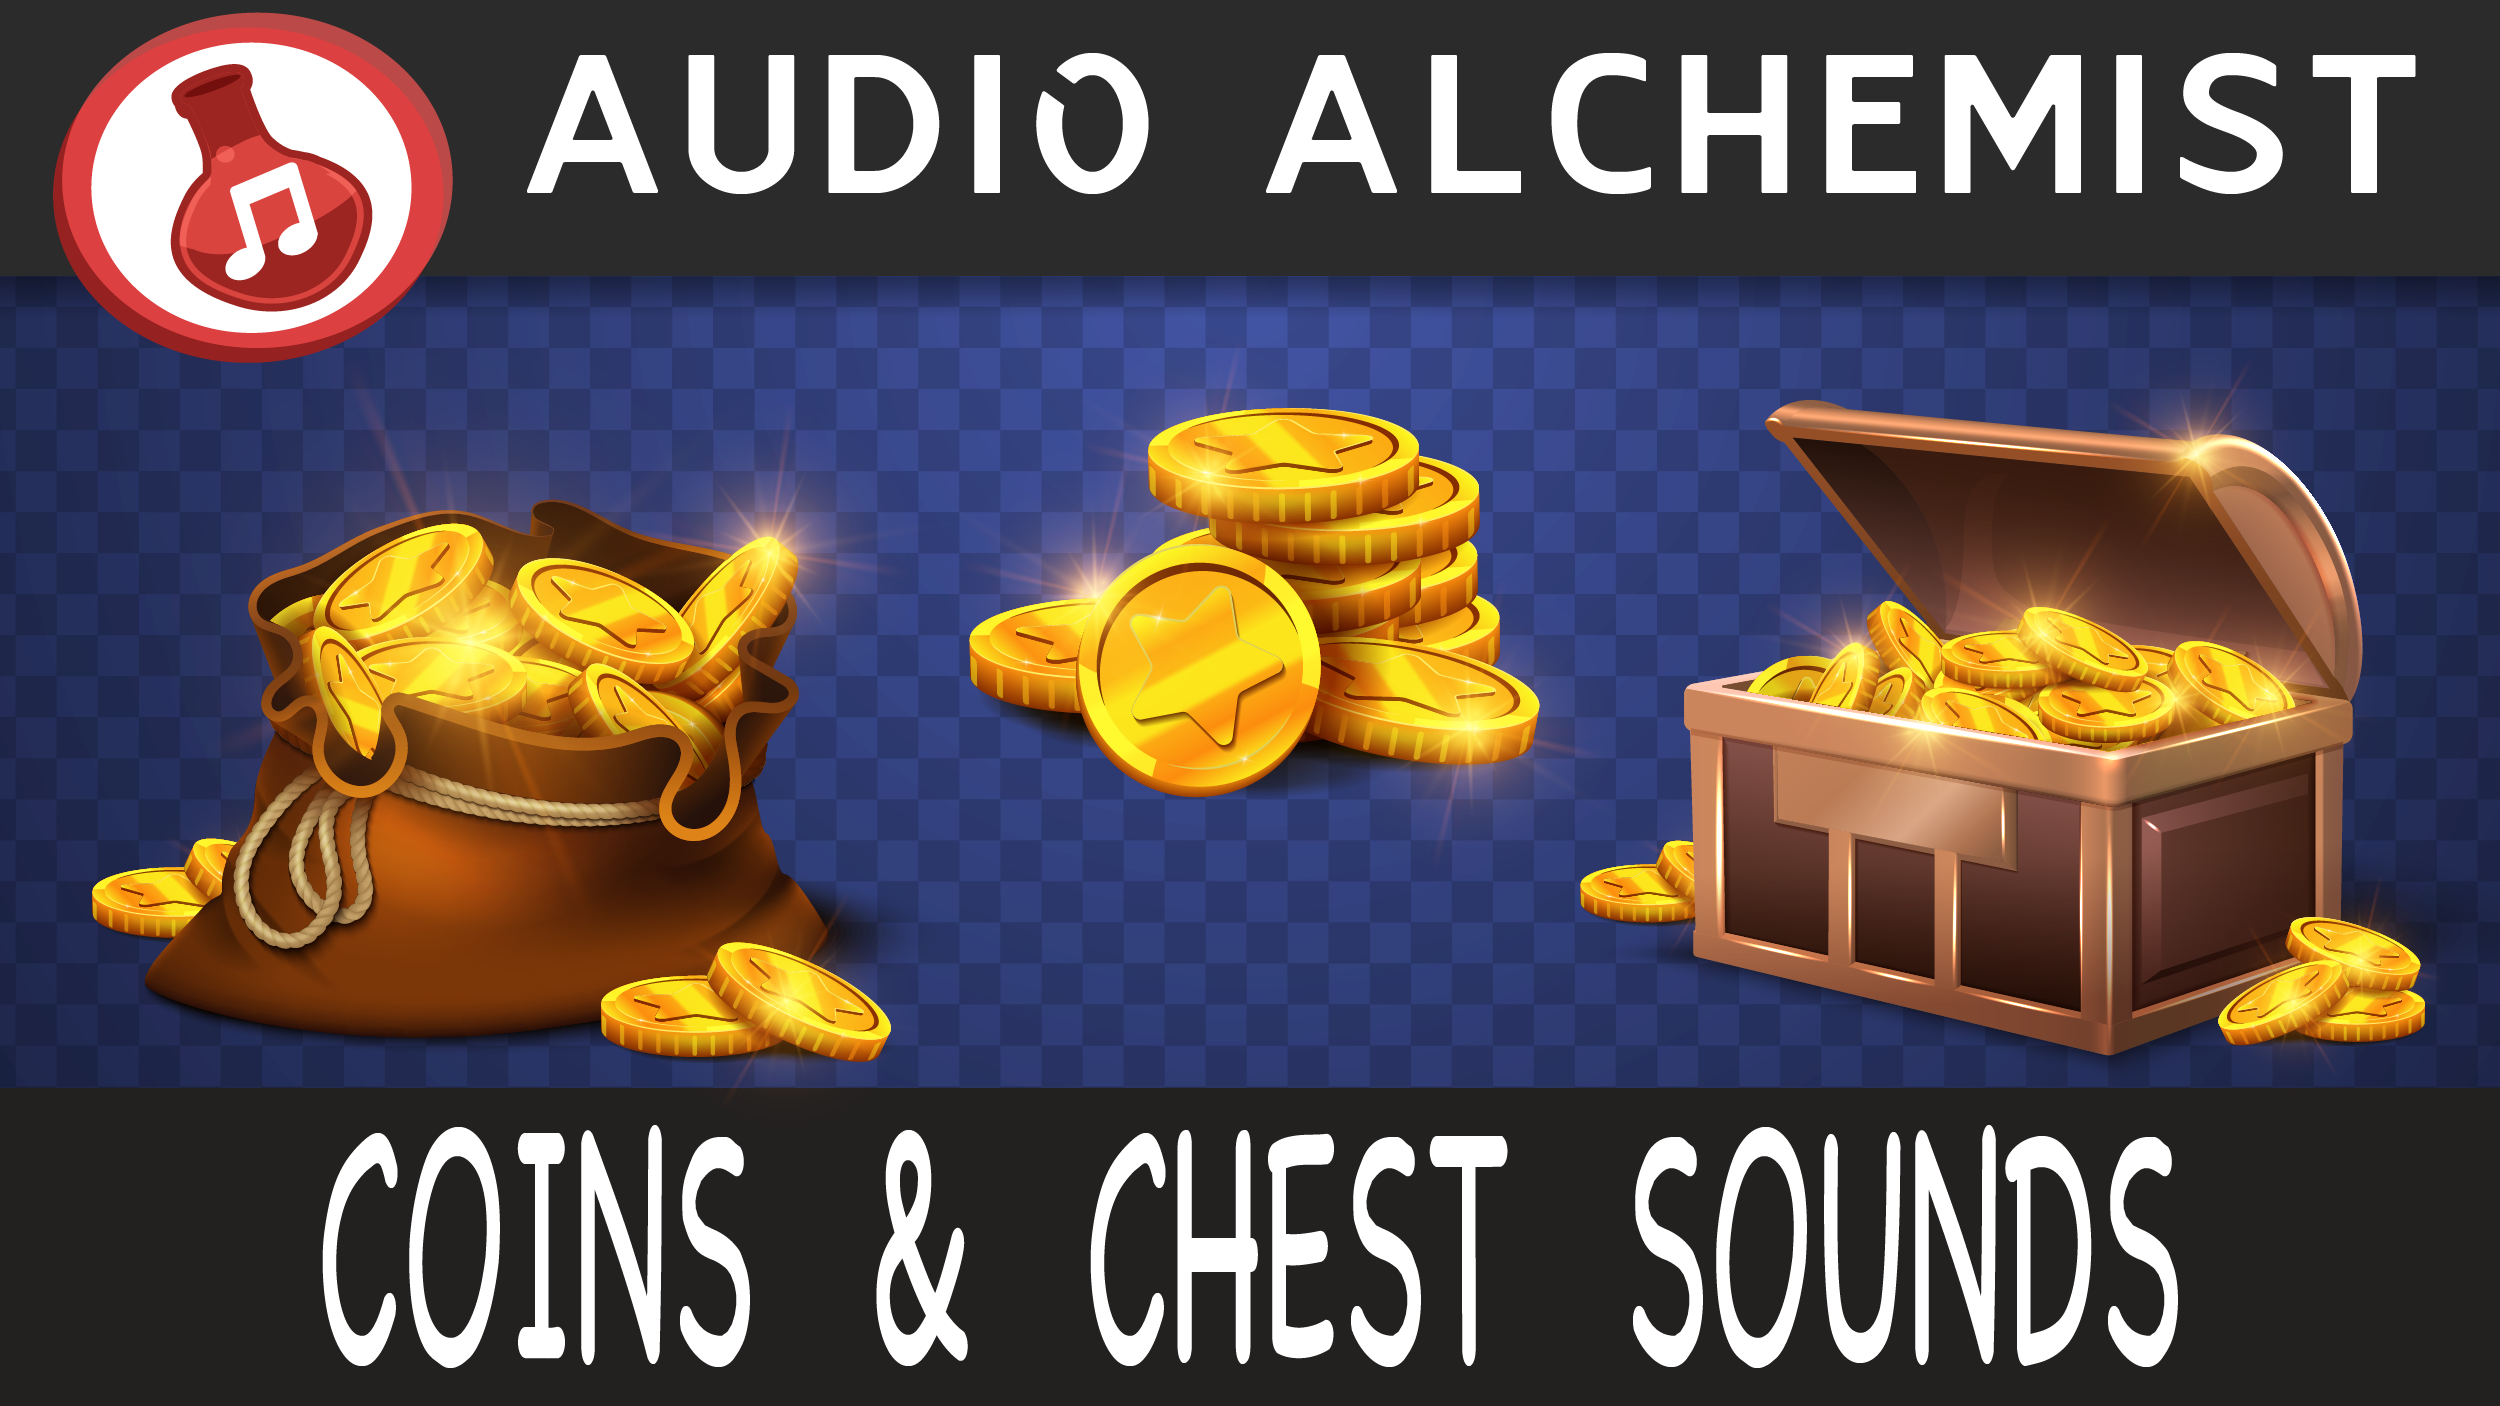 Coins & Chest Sounds